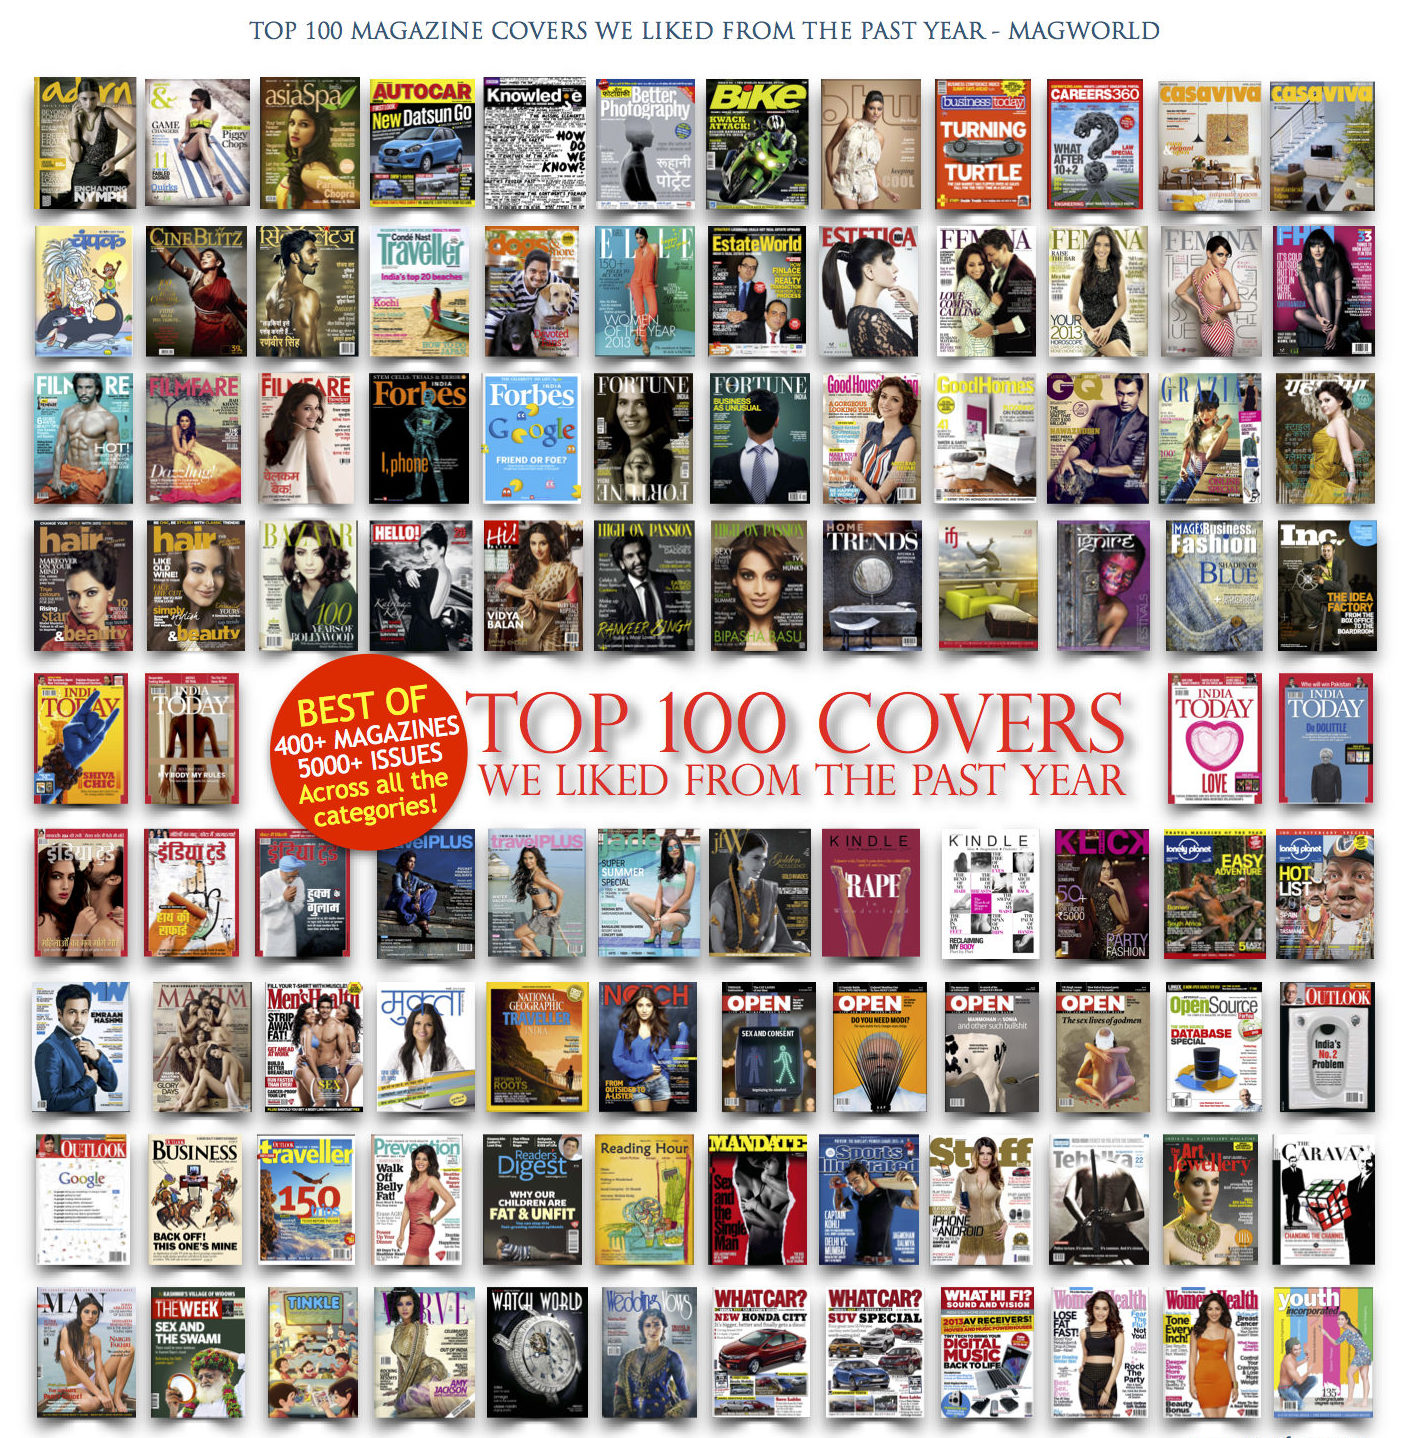 TOP 100 COVERS - FB Ad pg1